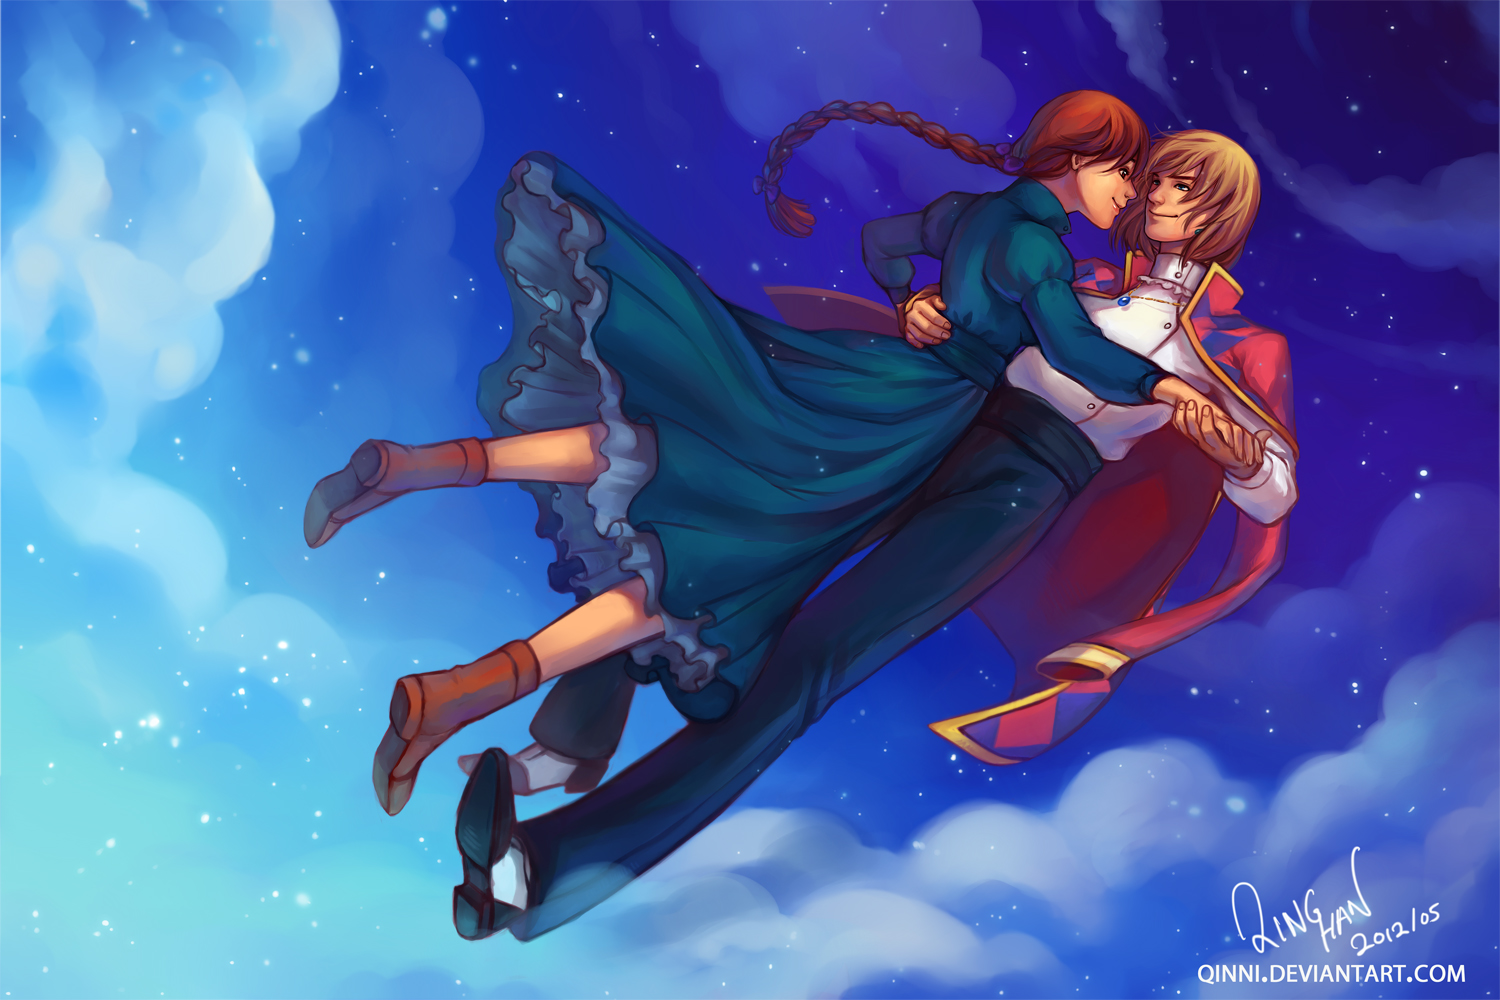 Howl and Sophie - Dancing on Clouds by Qinni on DeviantArt